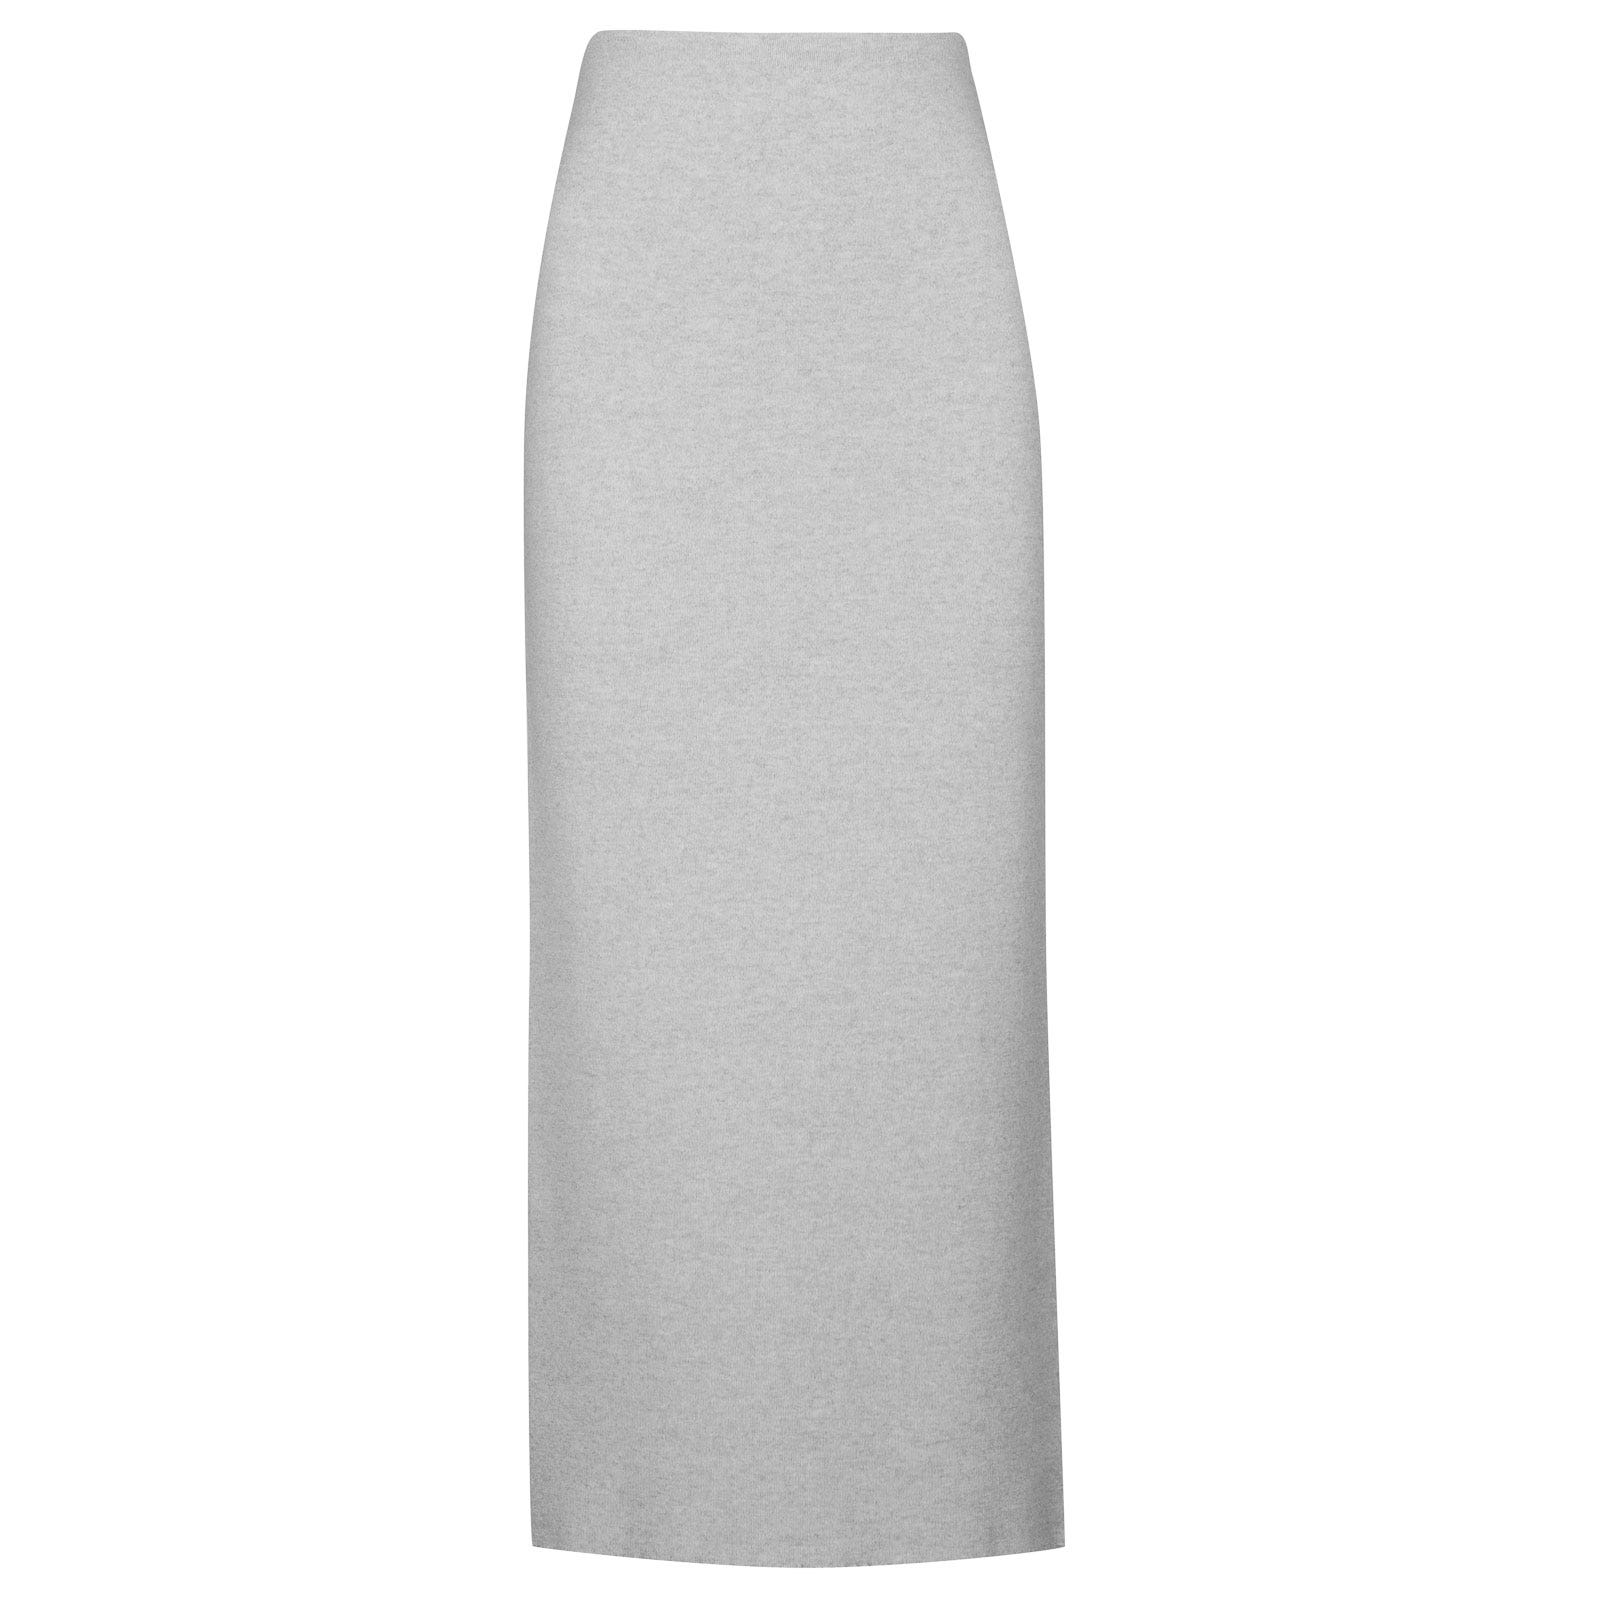 John Smedley moran Merino Wool Skirt in Bardot Grey-M